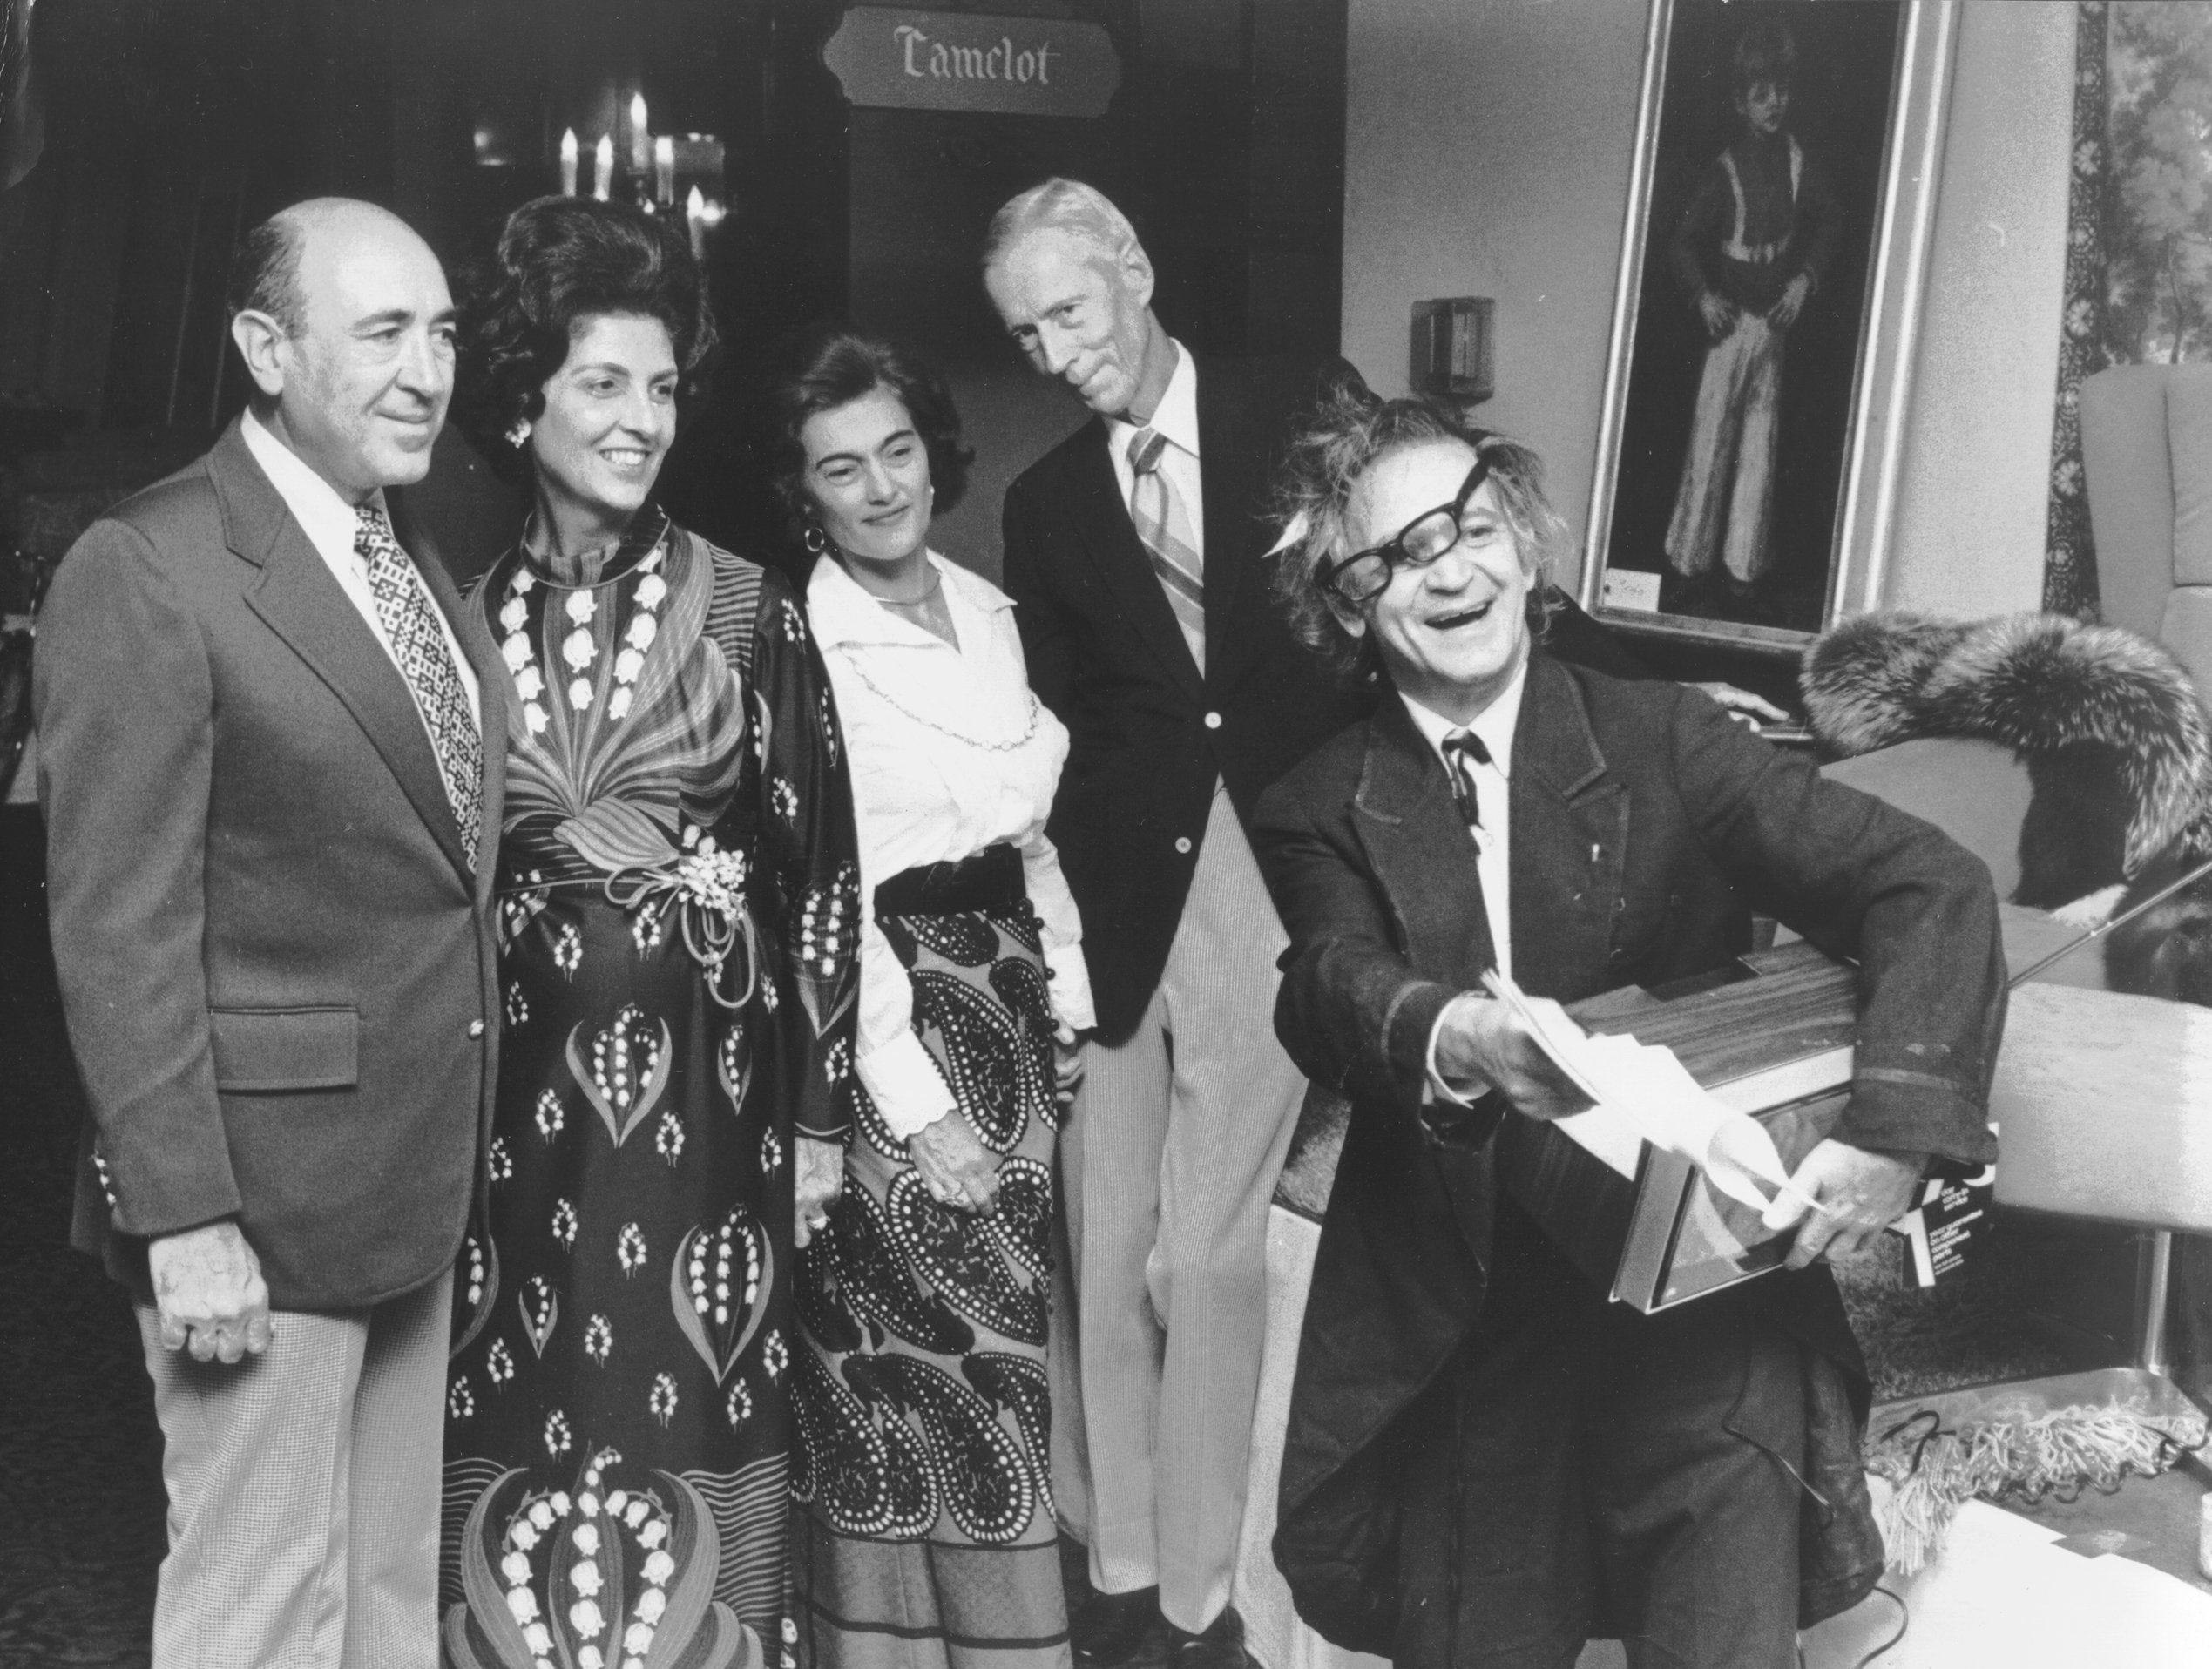 """Professor Irwin Corey (Right), self-styled """"world's foremost authority,"""" wowed them in Sep 1973 at """"Auction Fantastic,"""" a benefit for the American Cancer Society at Holiday Hall of Holiday Inn-Rivermont.  Watching him warm up for the sale (which included a riverboat trip to Baton Rouge, an ensemble designed by Michael Novrese, a year's supply of bacon and a tour of Spain) are (From Left) Mr. and Mrs. Leonard Pierotti and Mr. and Mrs. William Faye.  Tony Barrasso presented music at the party, which included cocktails and dinner and a silent auction before the major event."""